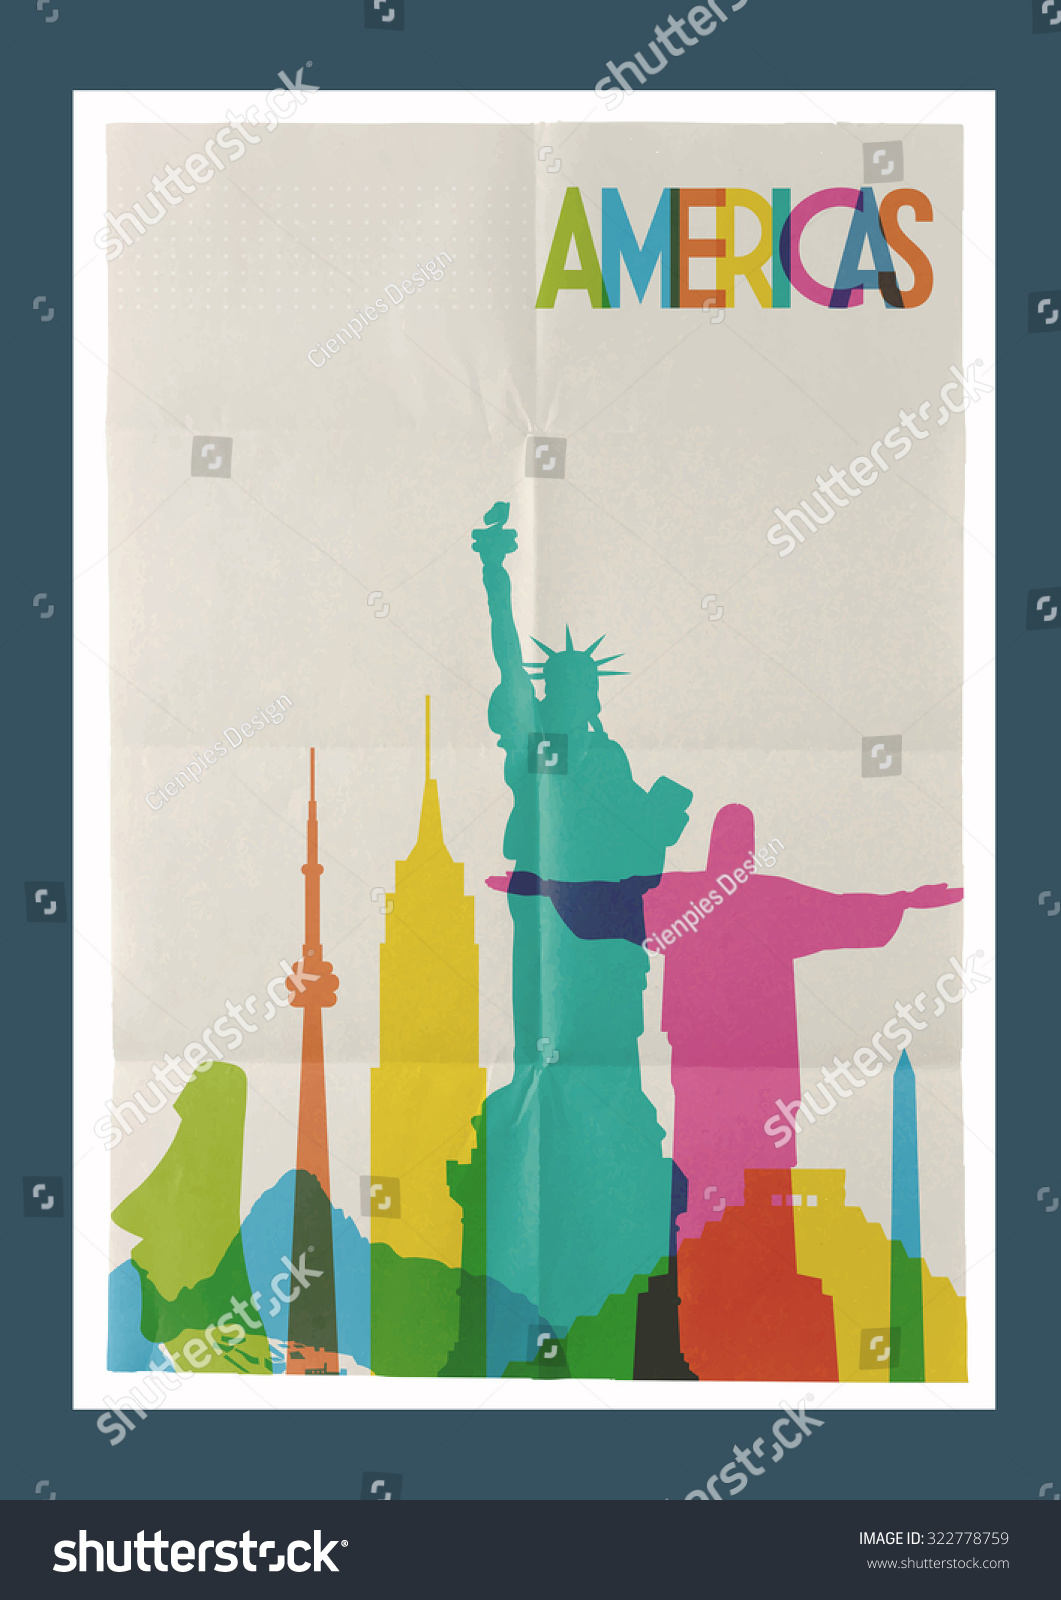 Poster design your own - Travel The Americas Famous Landmarks Skyline On Vintage Paper Poster Sheet Design Background Create Your